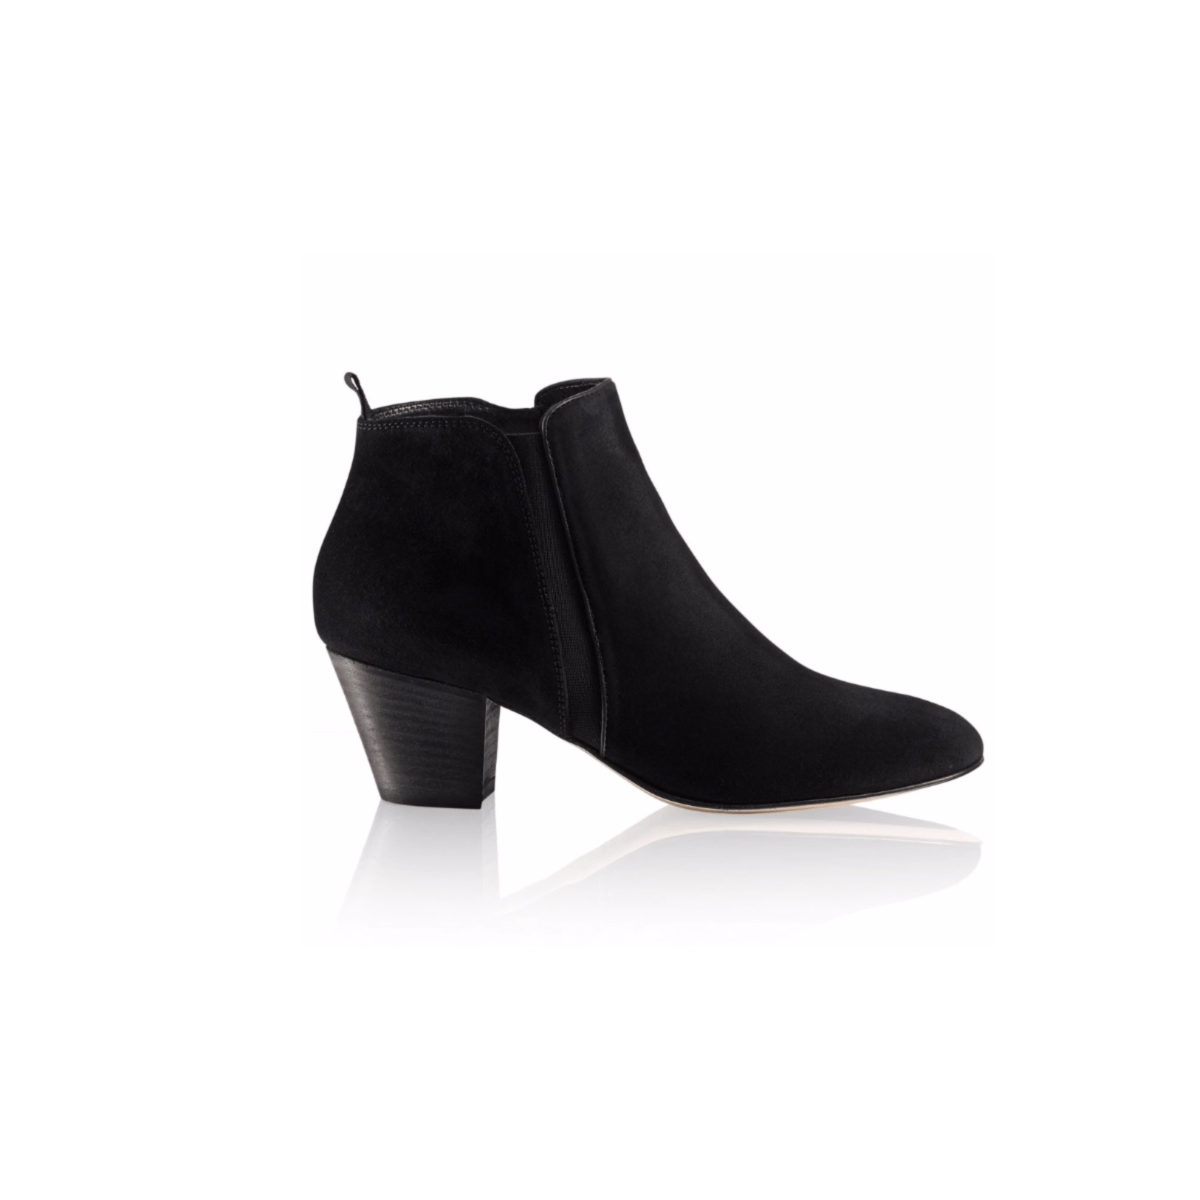 Russell and Bromley 'Fab Dry' Black